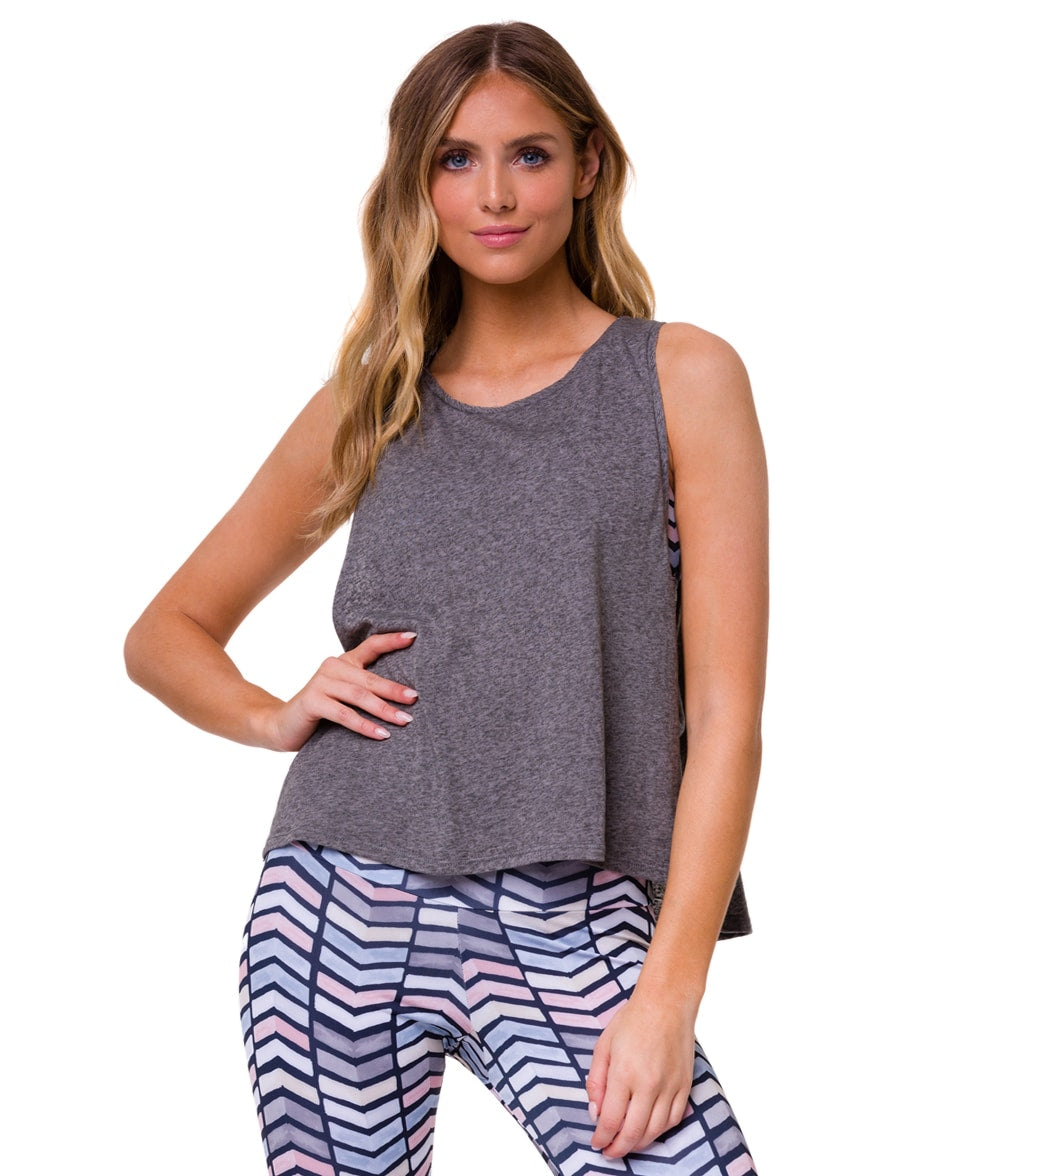 The Onzie Vintage Yoga Tank combines comfort, style, and functionality all-in-one. FeaturesLayering tank. Scoop neck. Dropped armhole. High-low hem. DetailsFabric: 75% Polyester / 25% CottonFit: RelaxedCountry of Origin: Made in U.S. A of imported materials About Onzie: Onzie was founded by a fearless woman and a devoted yogi with a Masters in Movement Therapy, Kimberly Swarth. She\\\'s the driving creative force behind Onzie and its collaborative company culture. Onzie blends the best of tradition